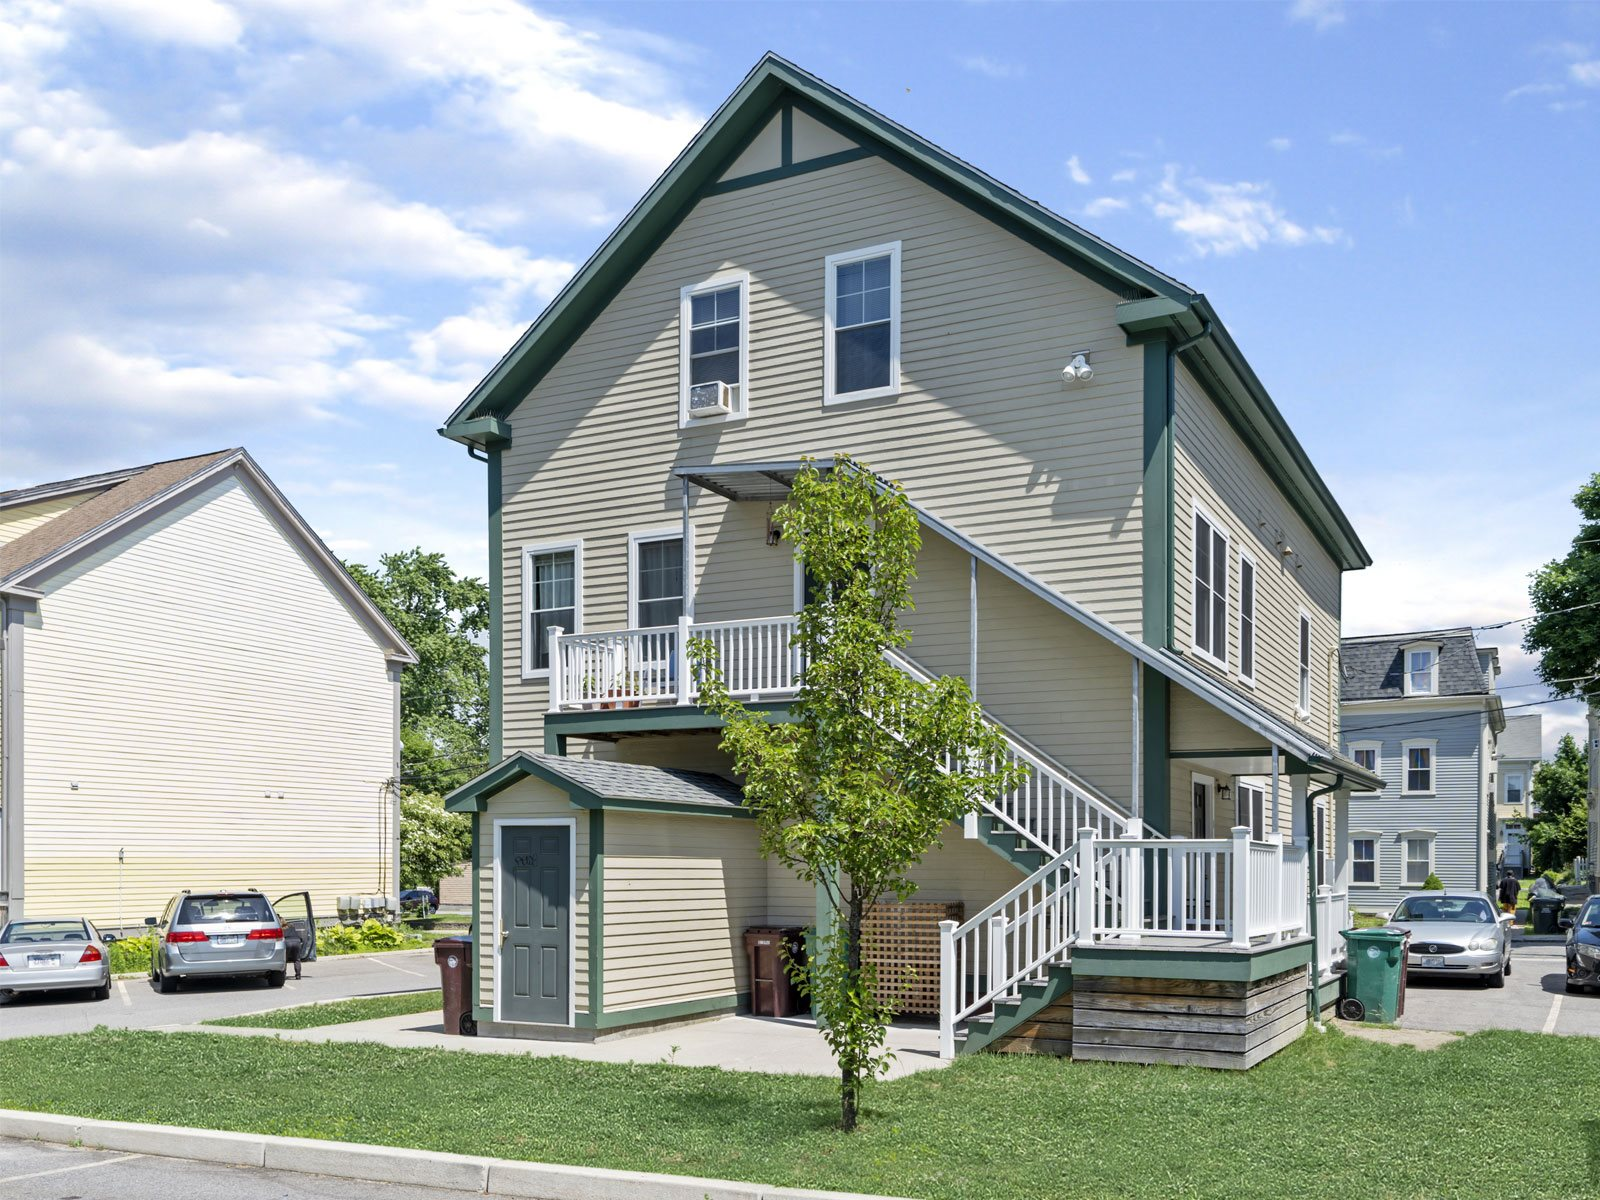 Image of Constitution Hill Apartments in Woonsocket, Rhode Island